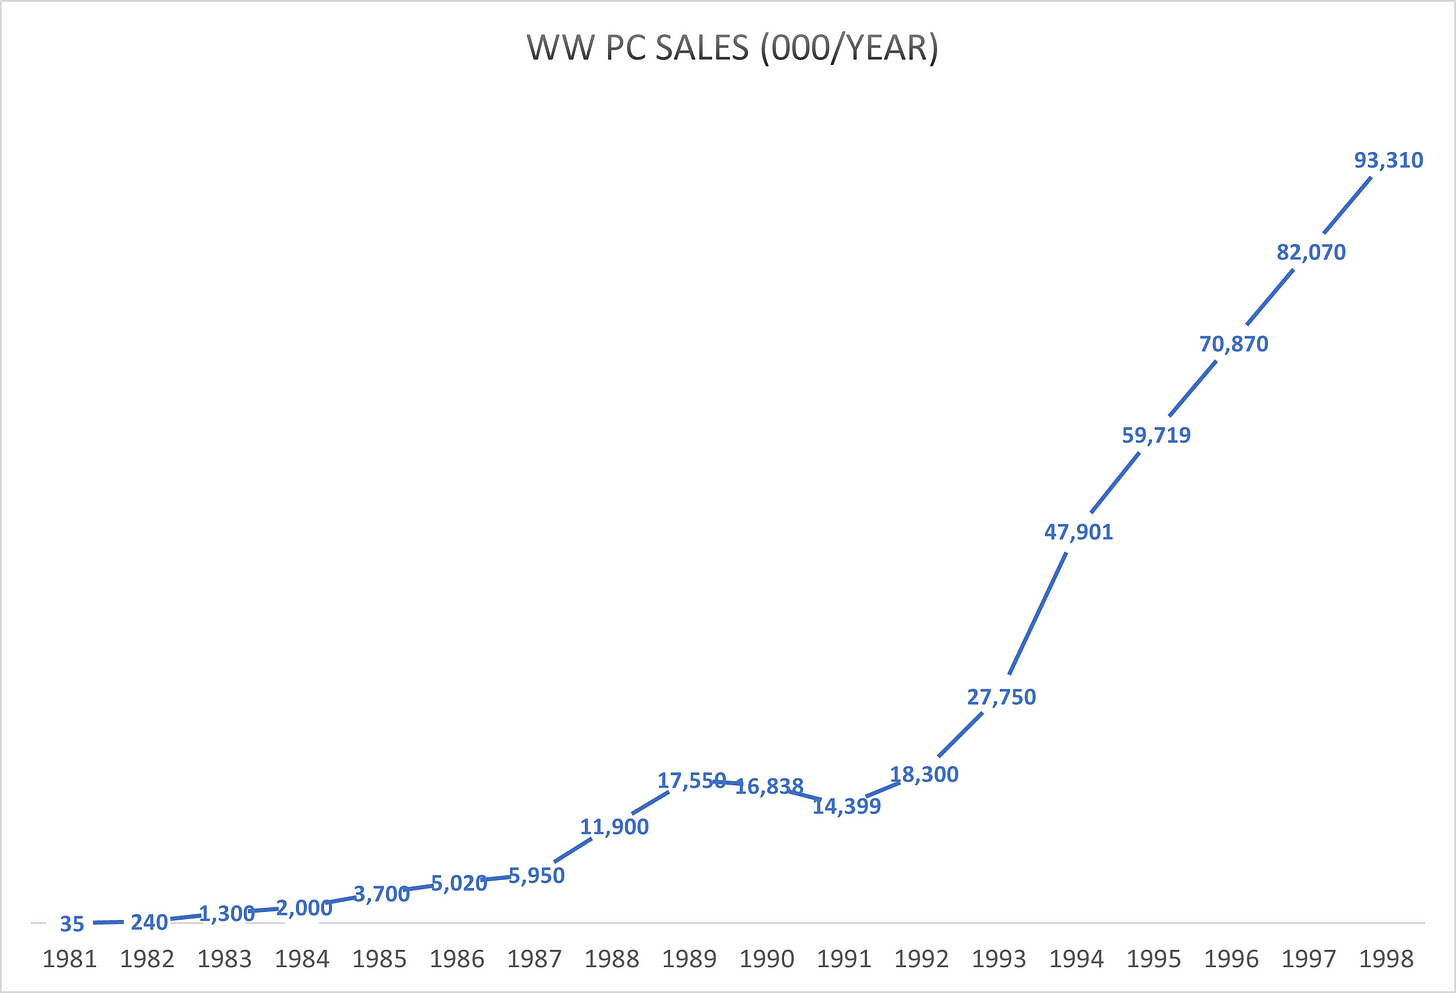 PC Sales graph showing growth of PC Sales from 1981 to 1998. The curve shows very steep growth since Windows 95